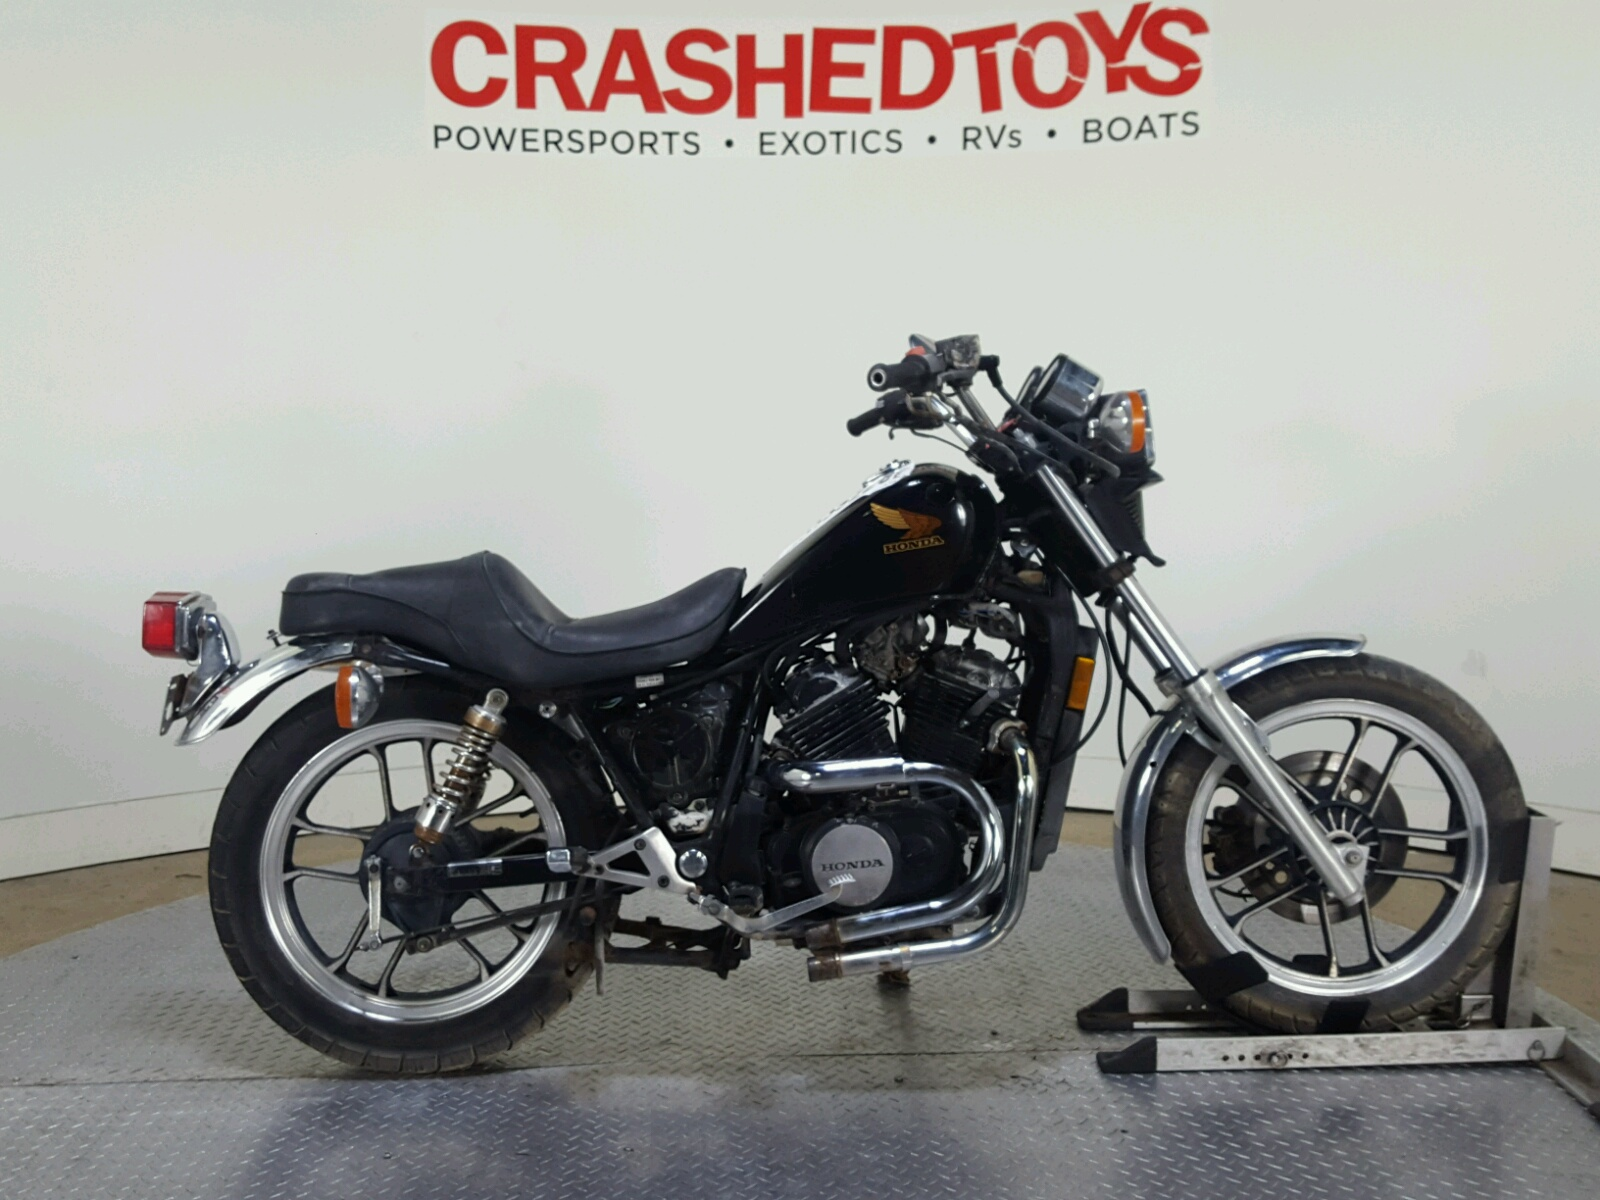 1983 Honda Vt500 Ft 2 In Tx Crashedtoys Dallas Jh2pc1003dm001225 Shadow Vt500c Parts Left View